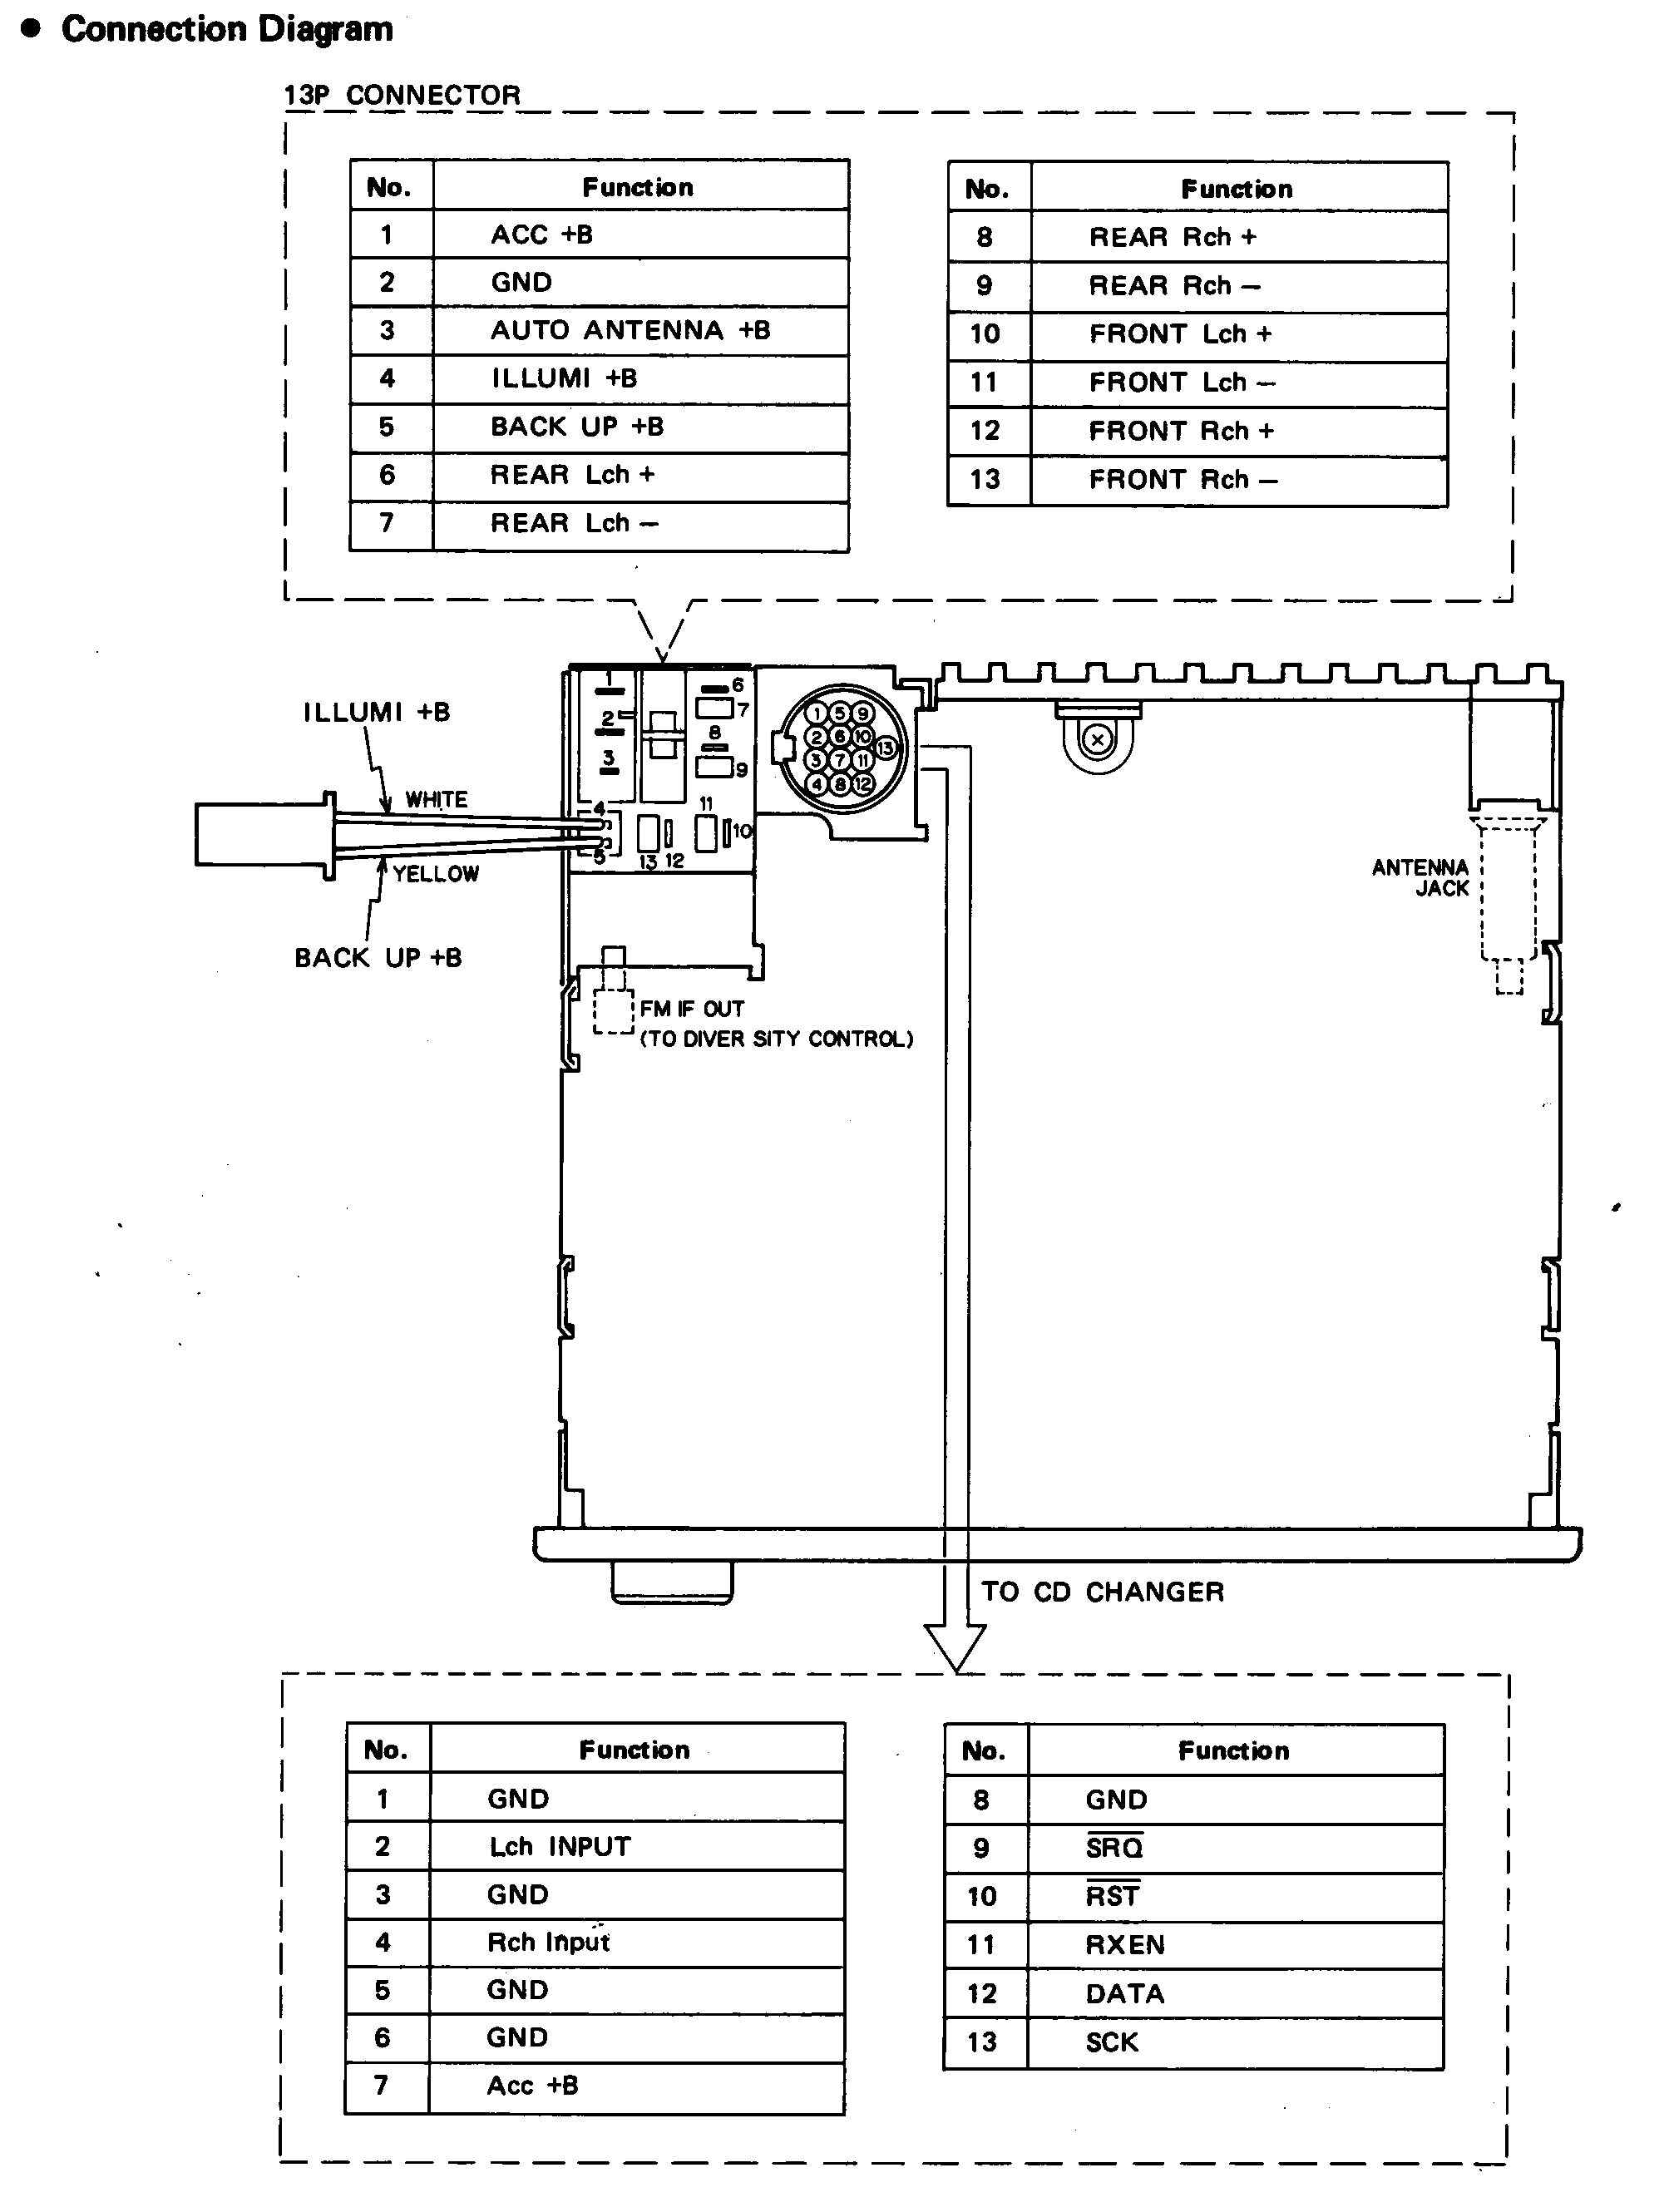 Isuzu Stock Radio Wiring Schematic Great Design Of Diagram 2000 Npr Car Audio Wire Codes Bmw Factory Stereo Repair Bose Rh Carstereohelp Net Light System Ftr